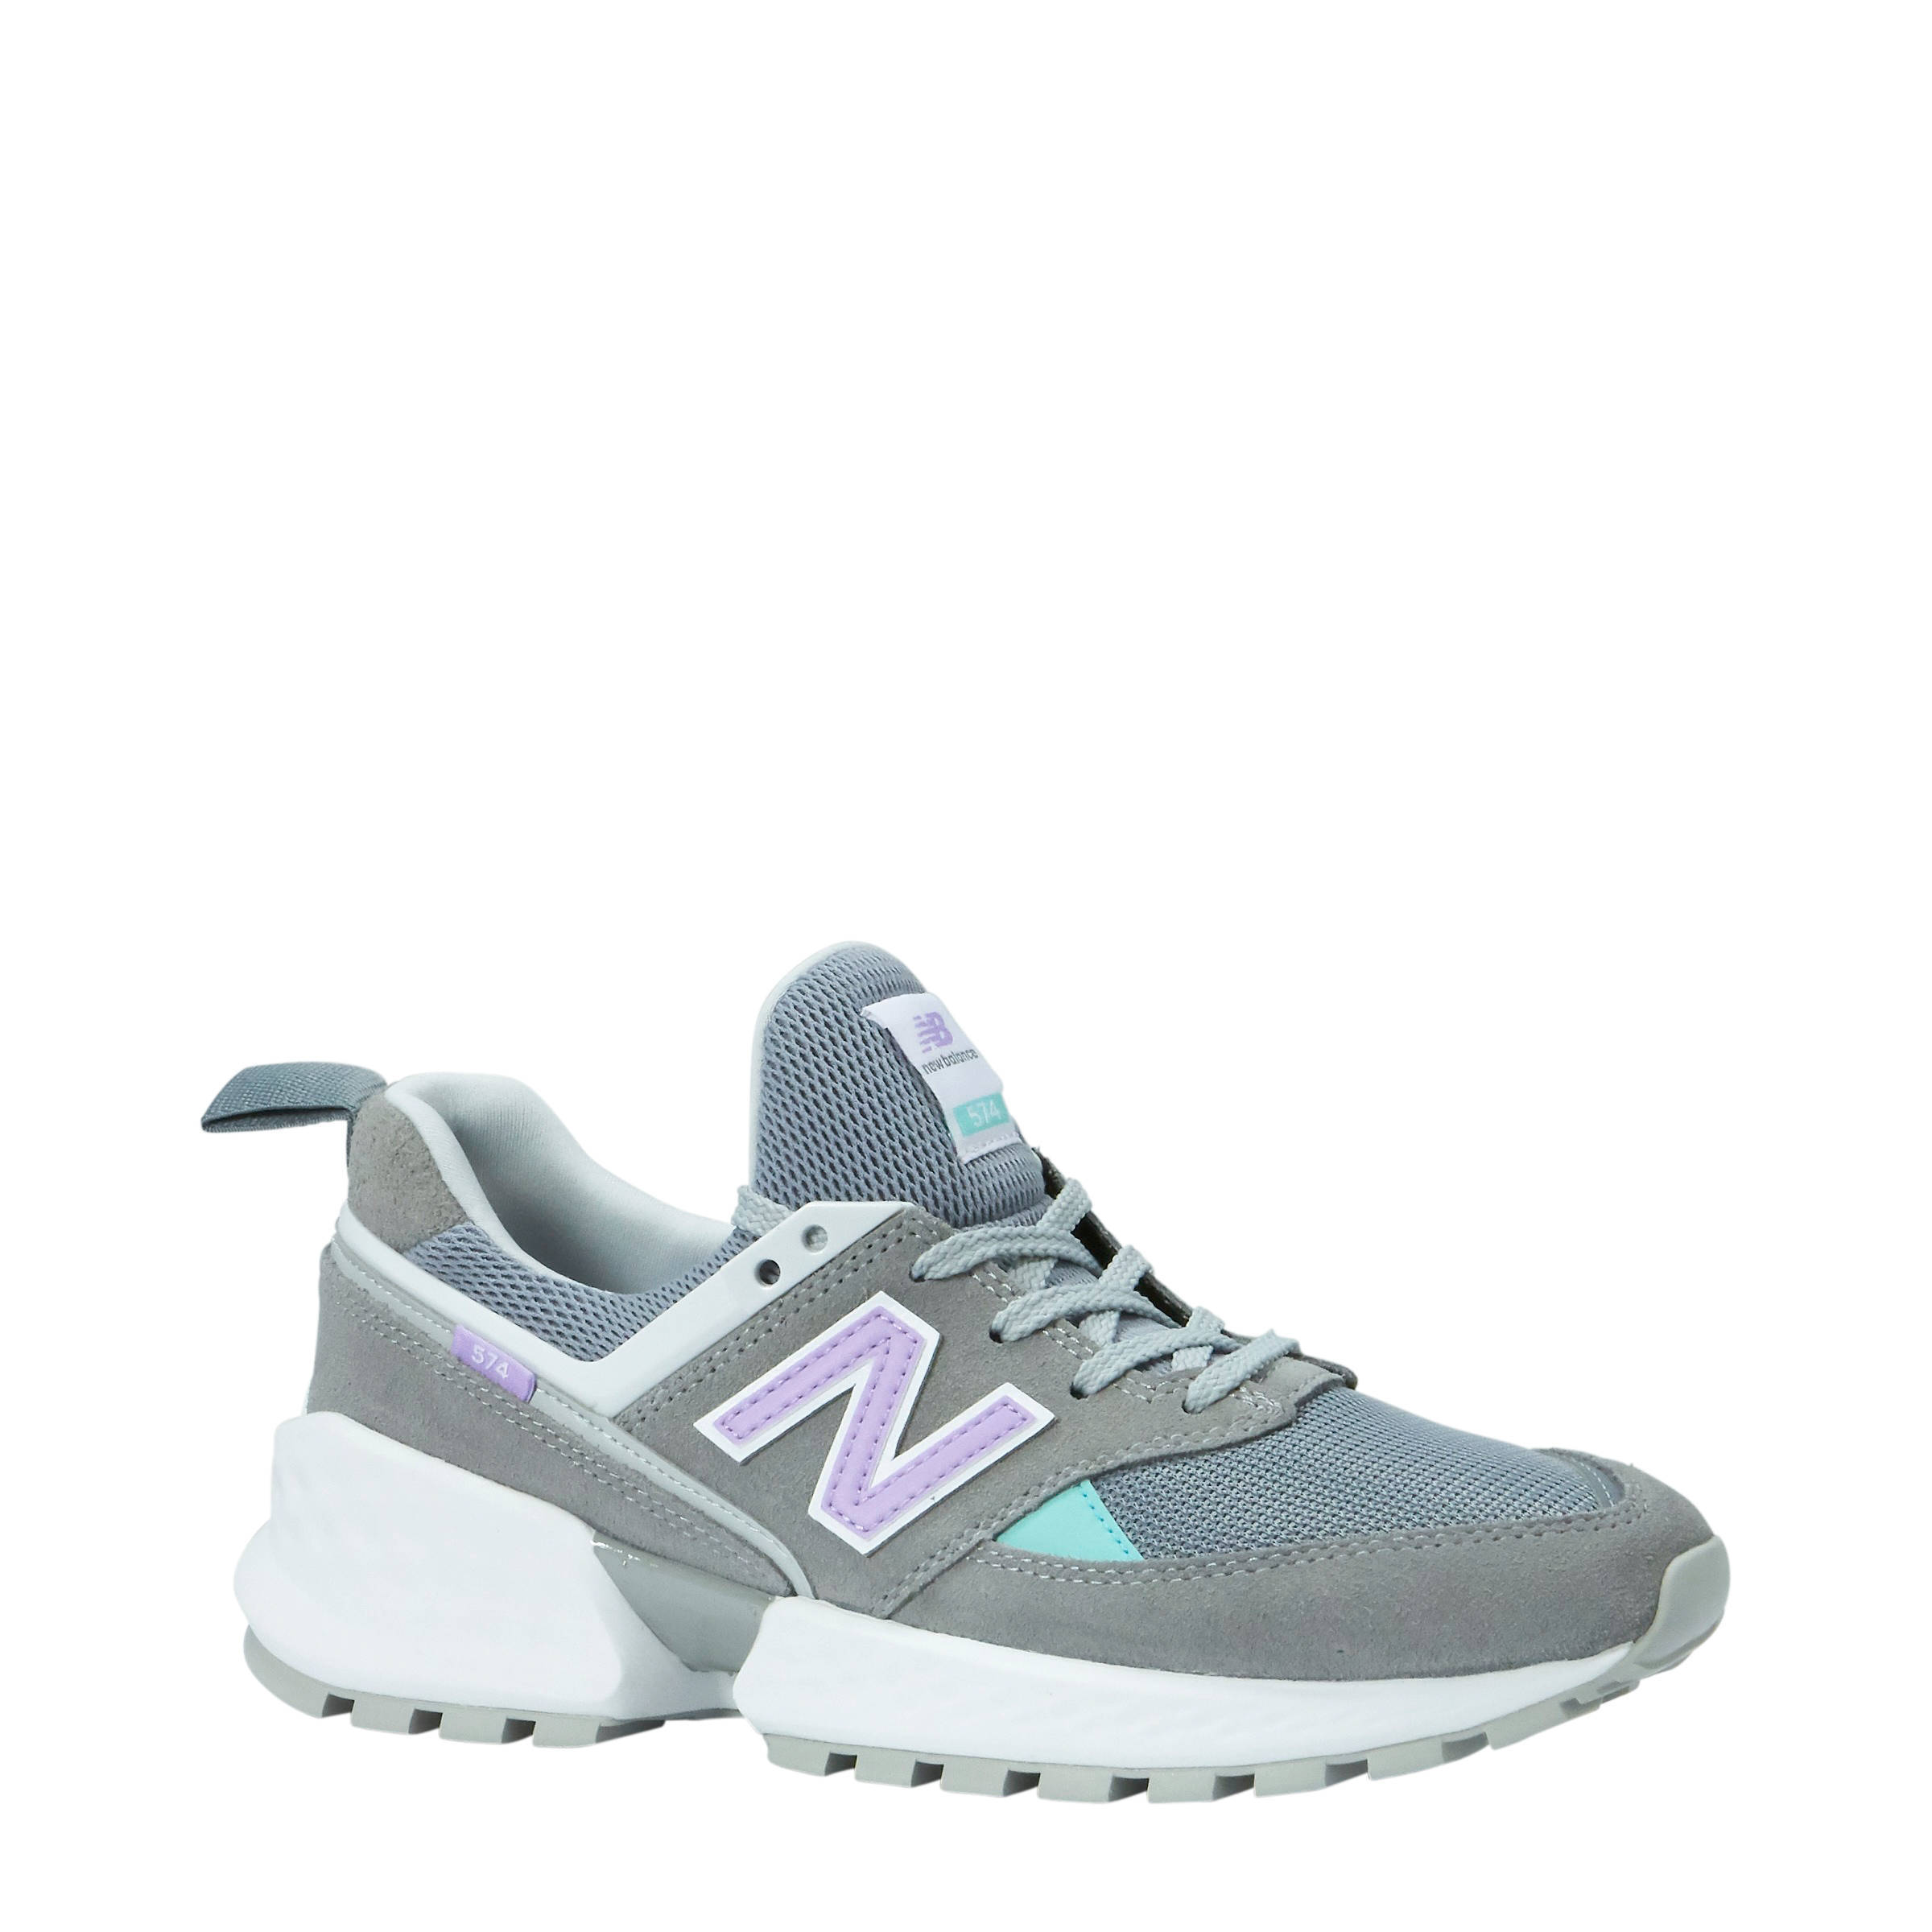 new balance sneakers mintgroen